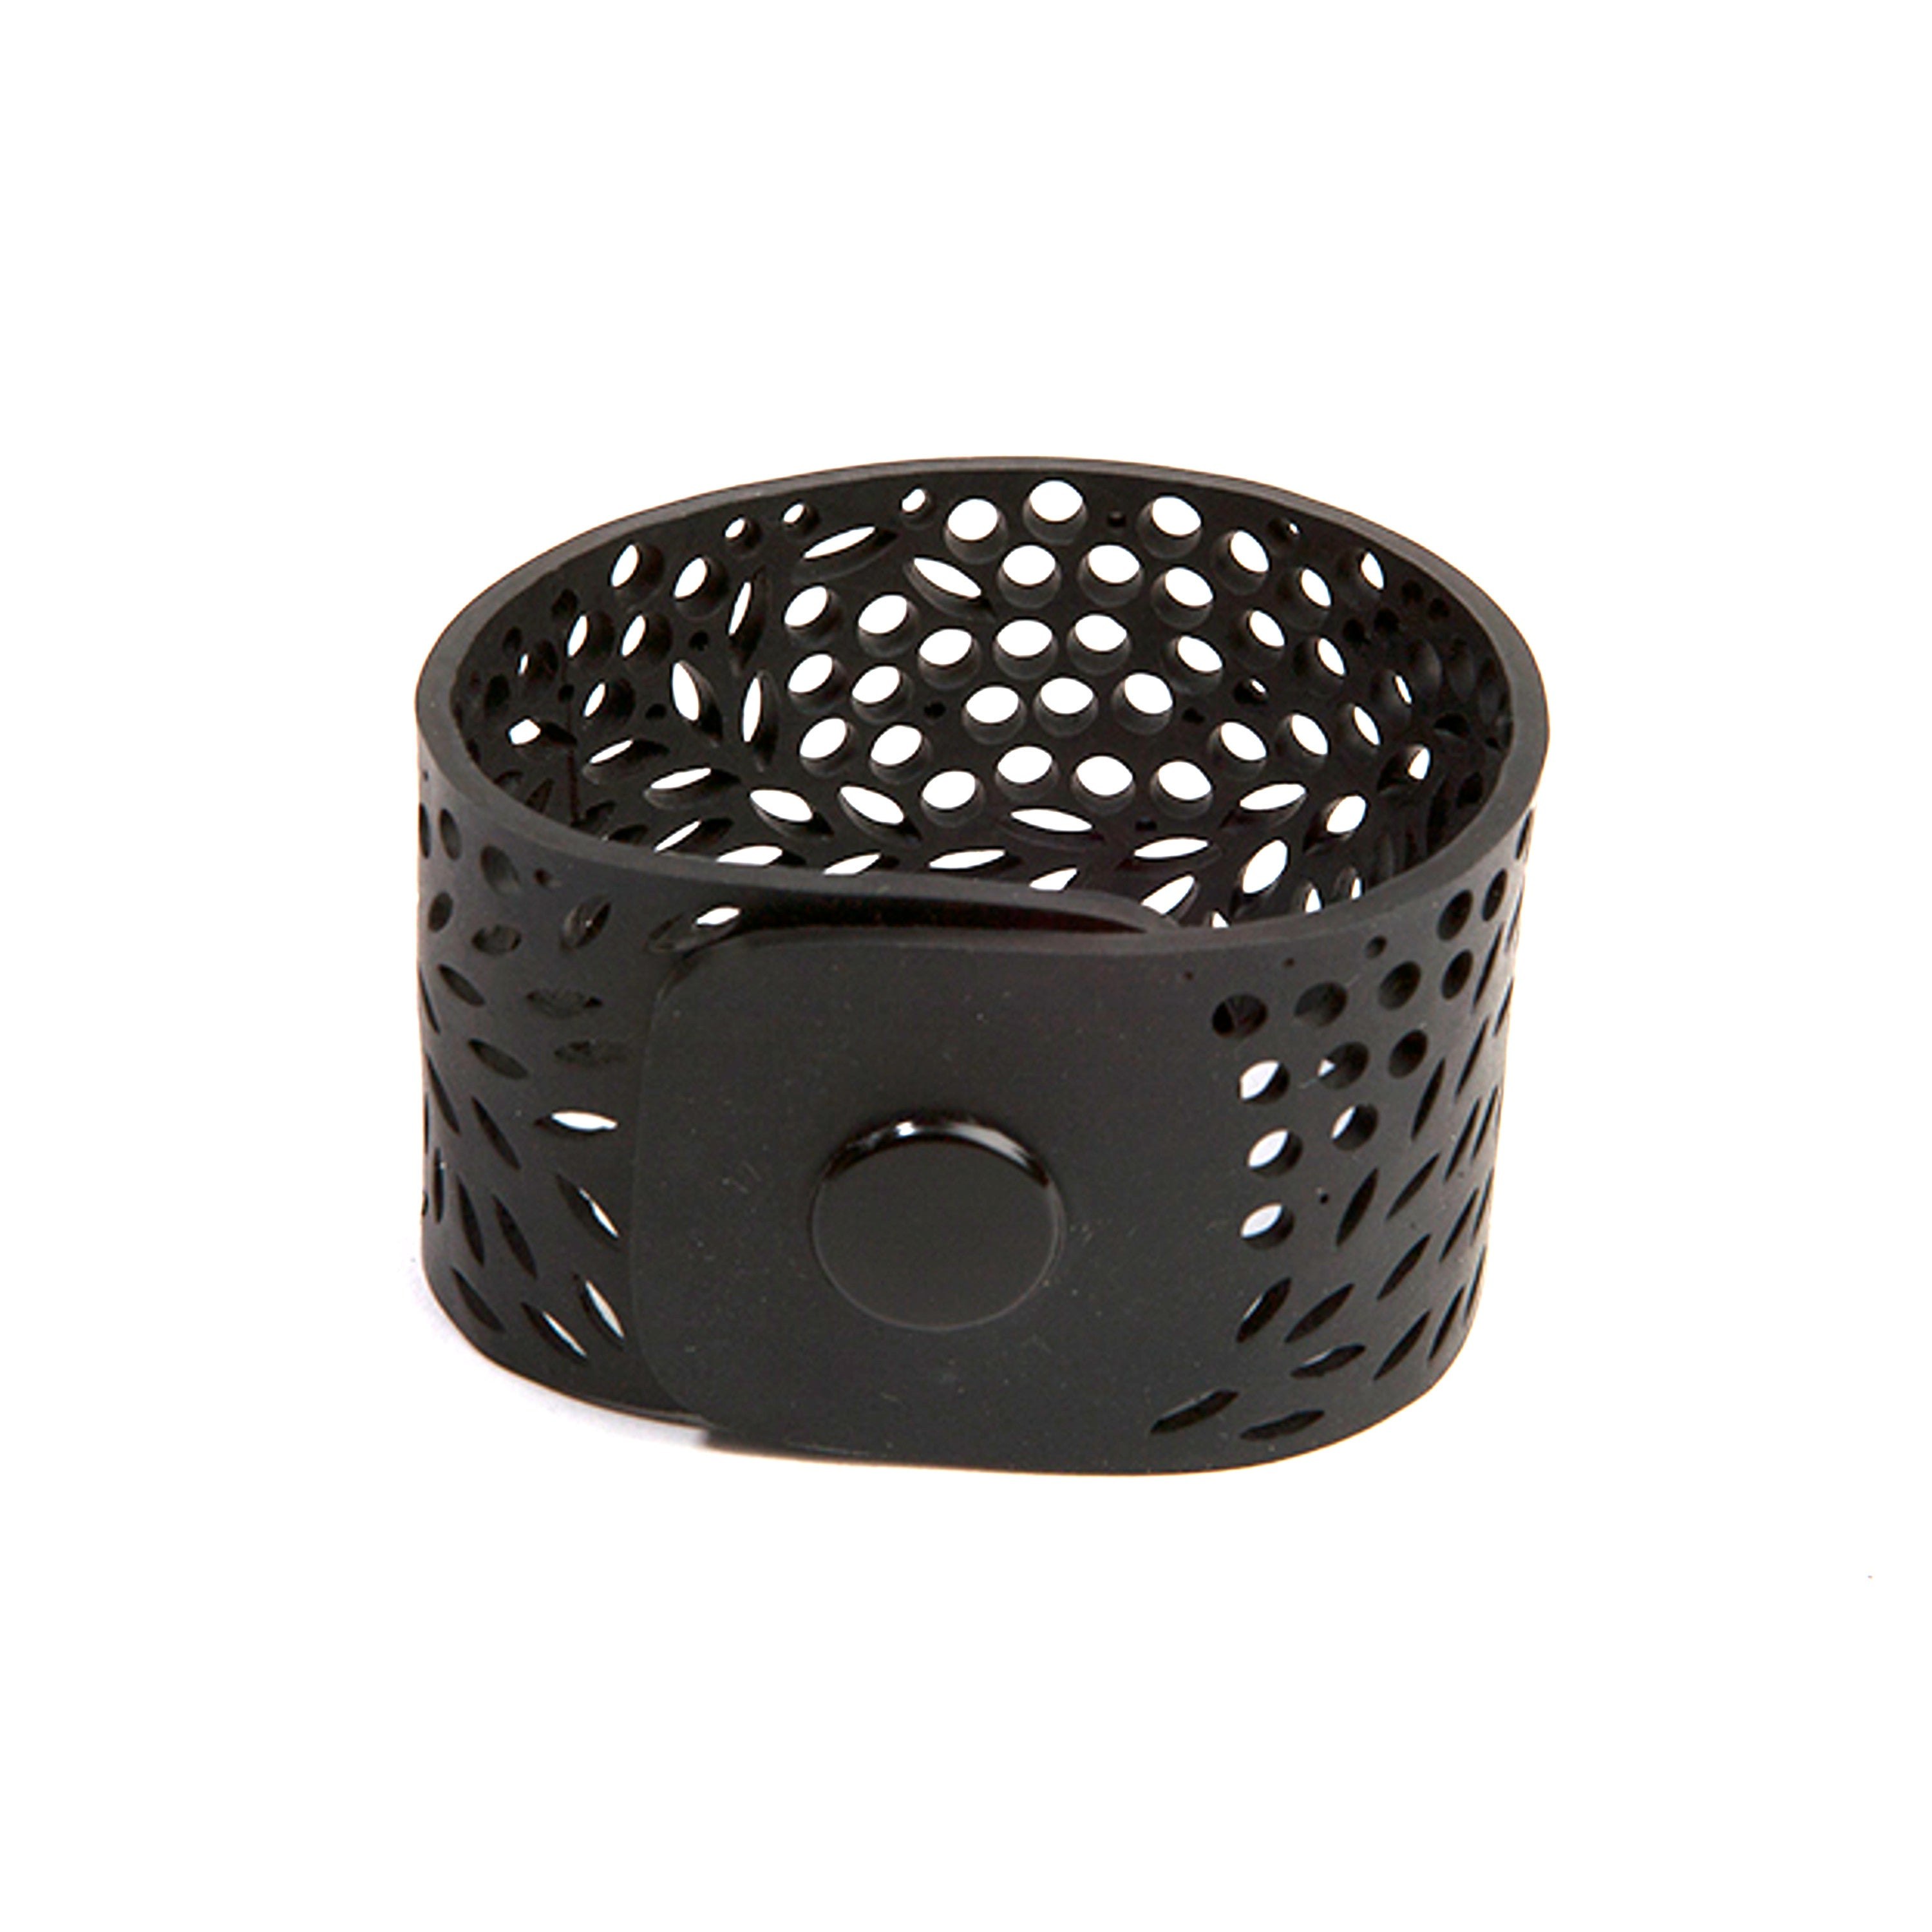 Kiky Unique Recycled Rubber Bracelet